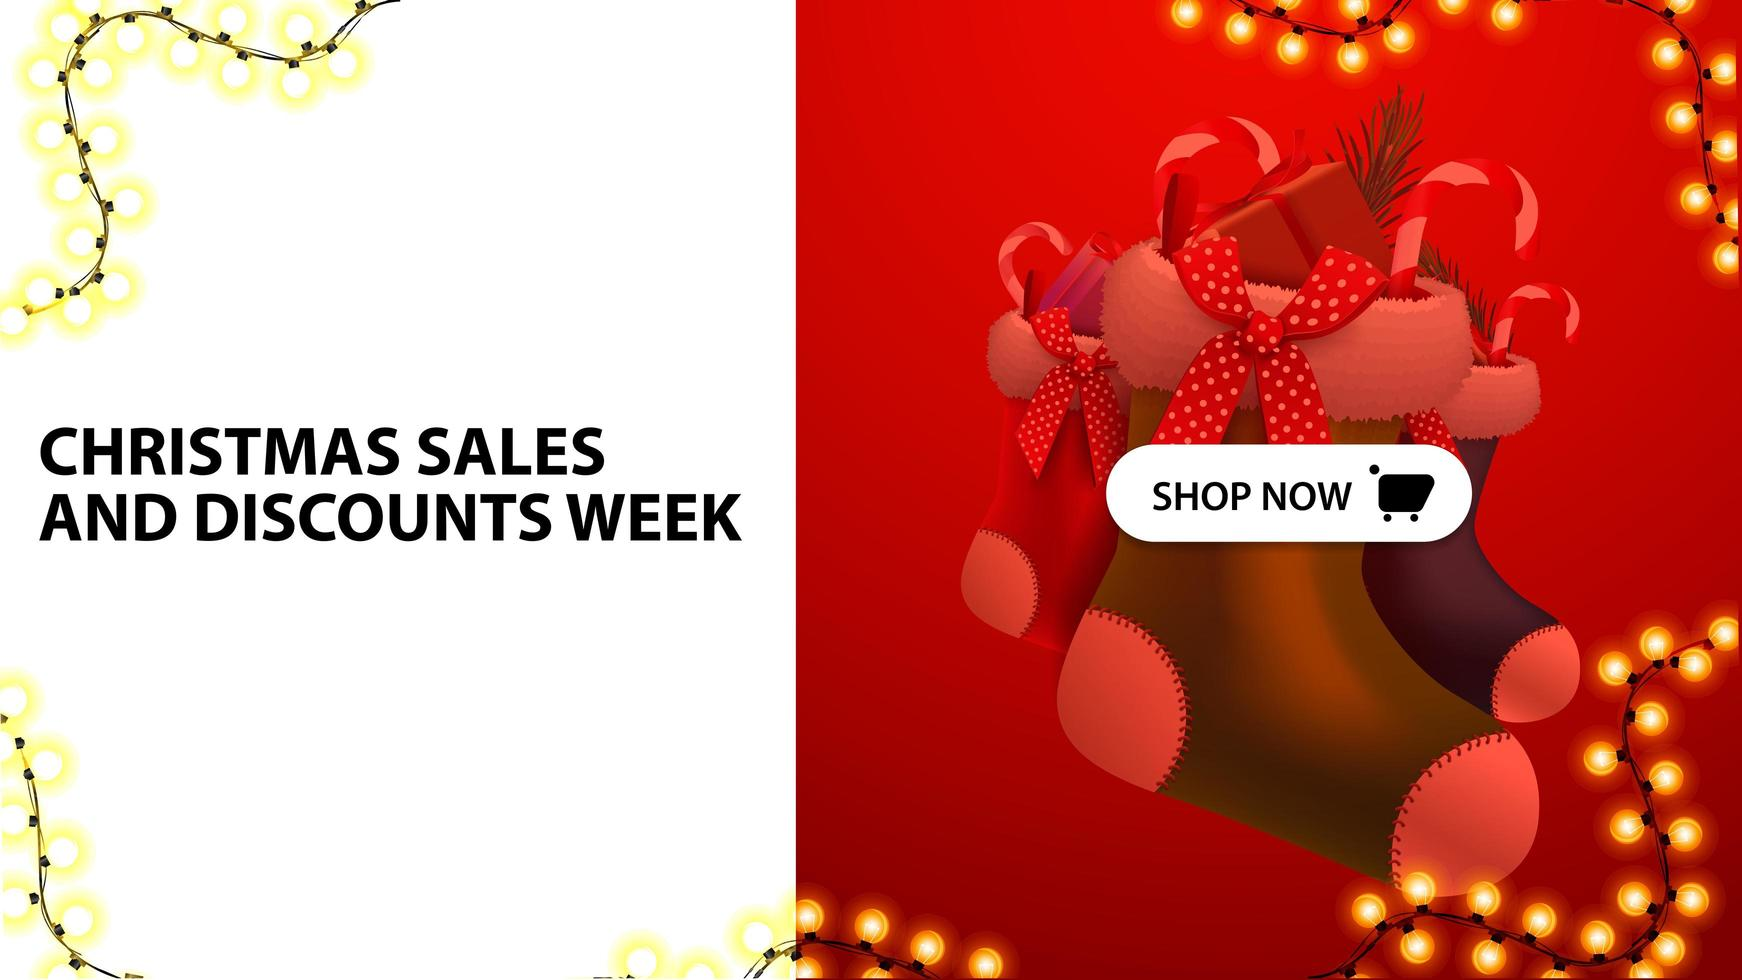 Christmas sales and discounts week, white and red discount banner with button and Christmas stockings vector